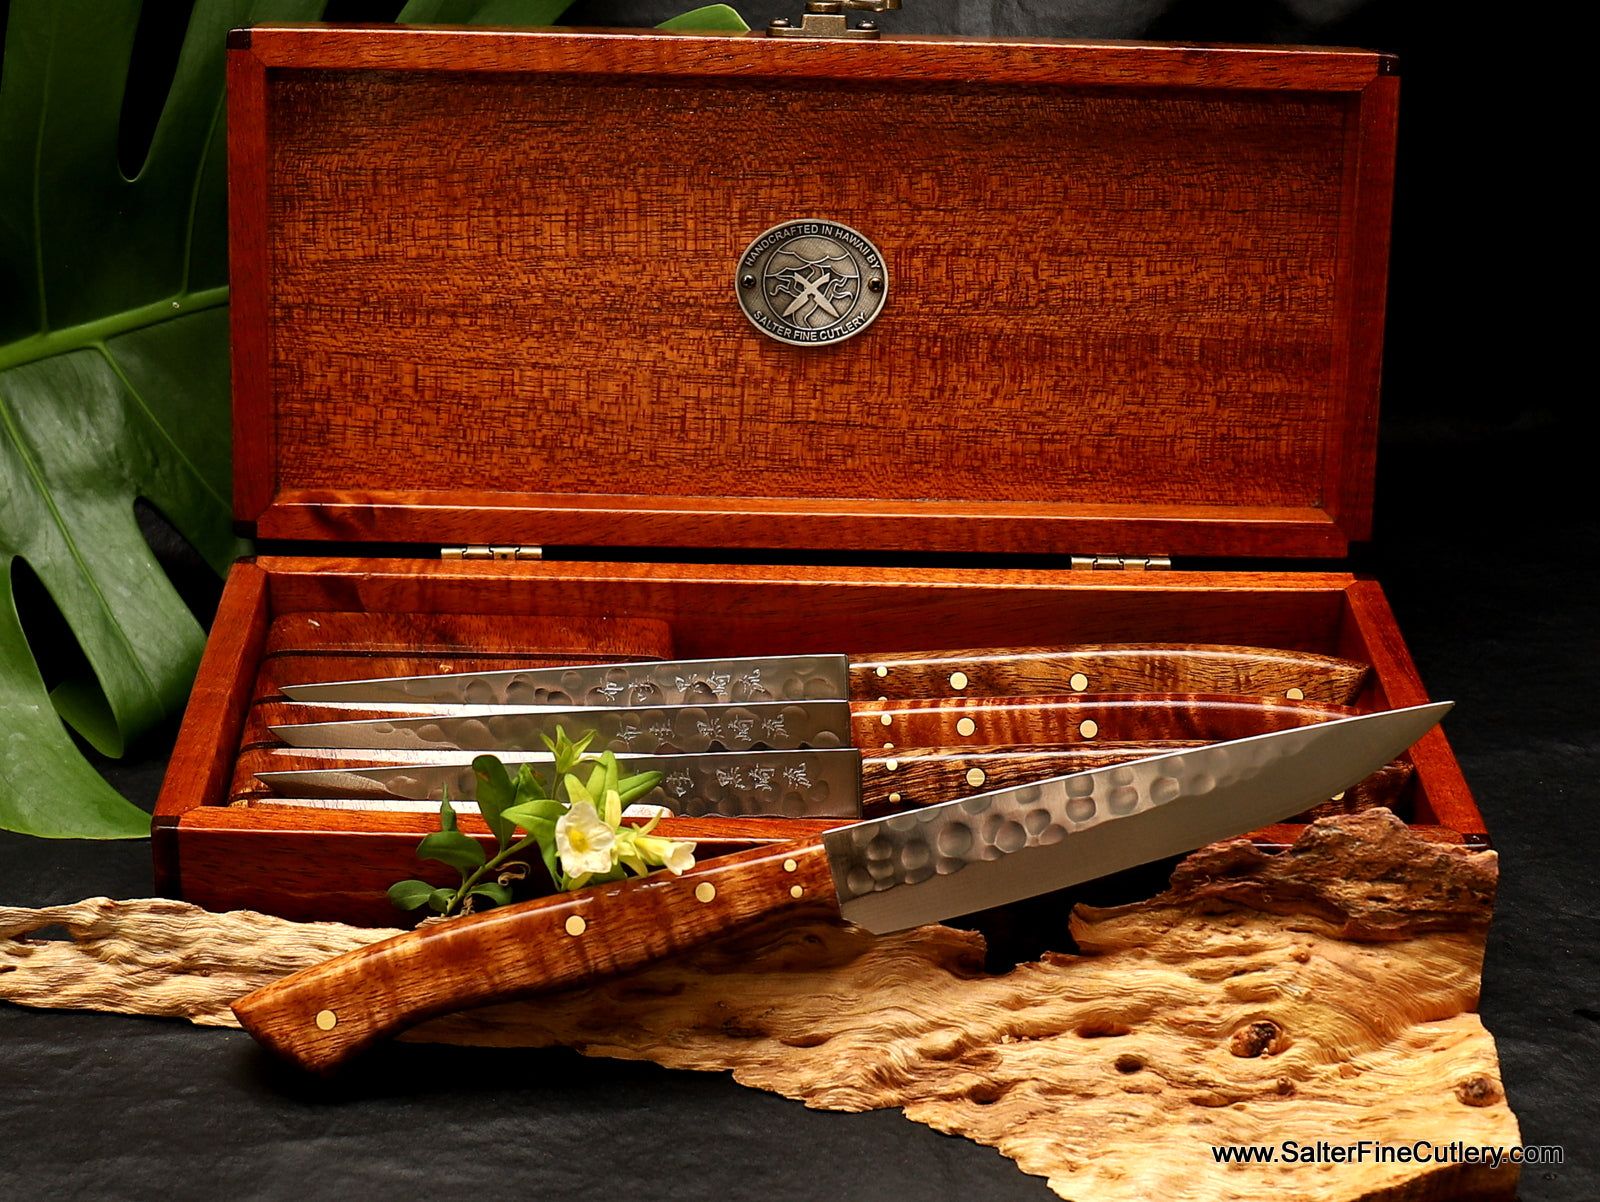 In Stock Item: 4-piece Steak Knife Set in Gift Box